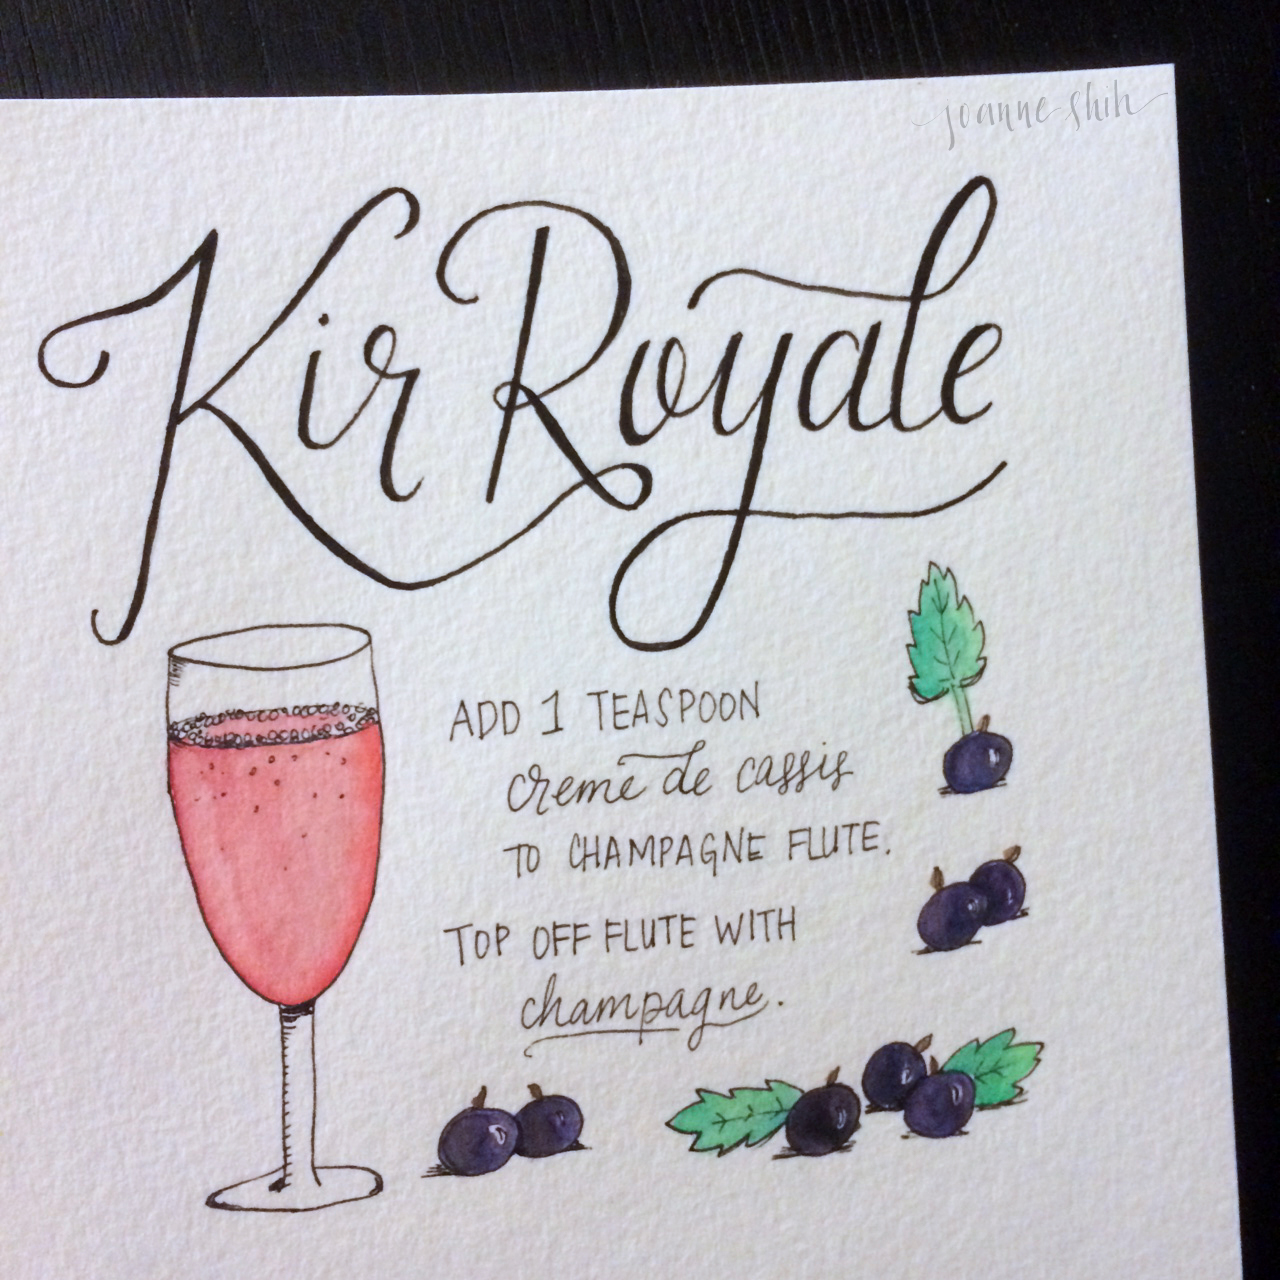 day-170-kir-royale.jpg